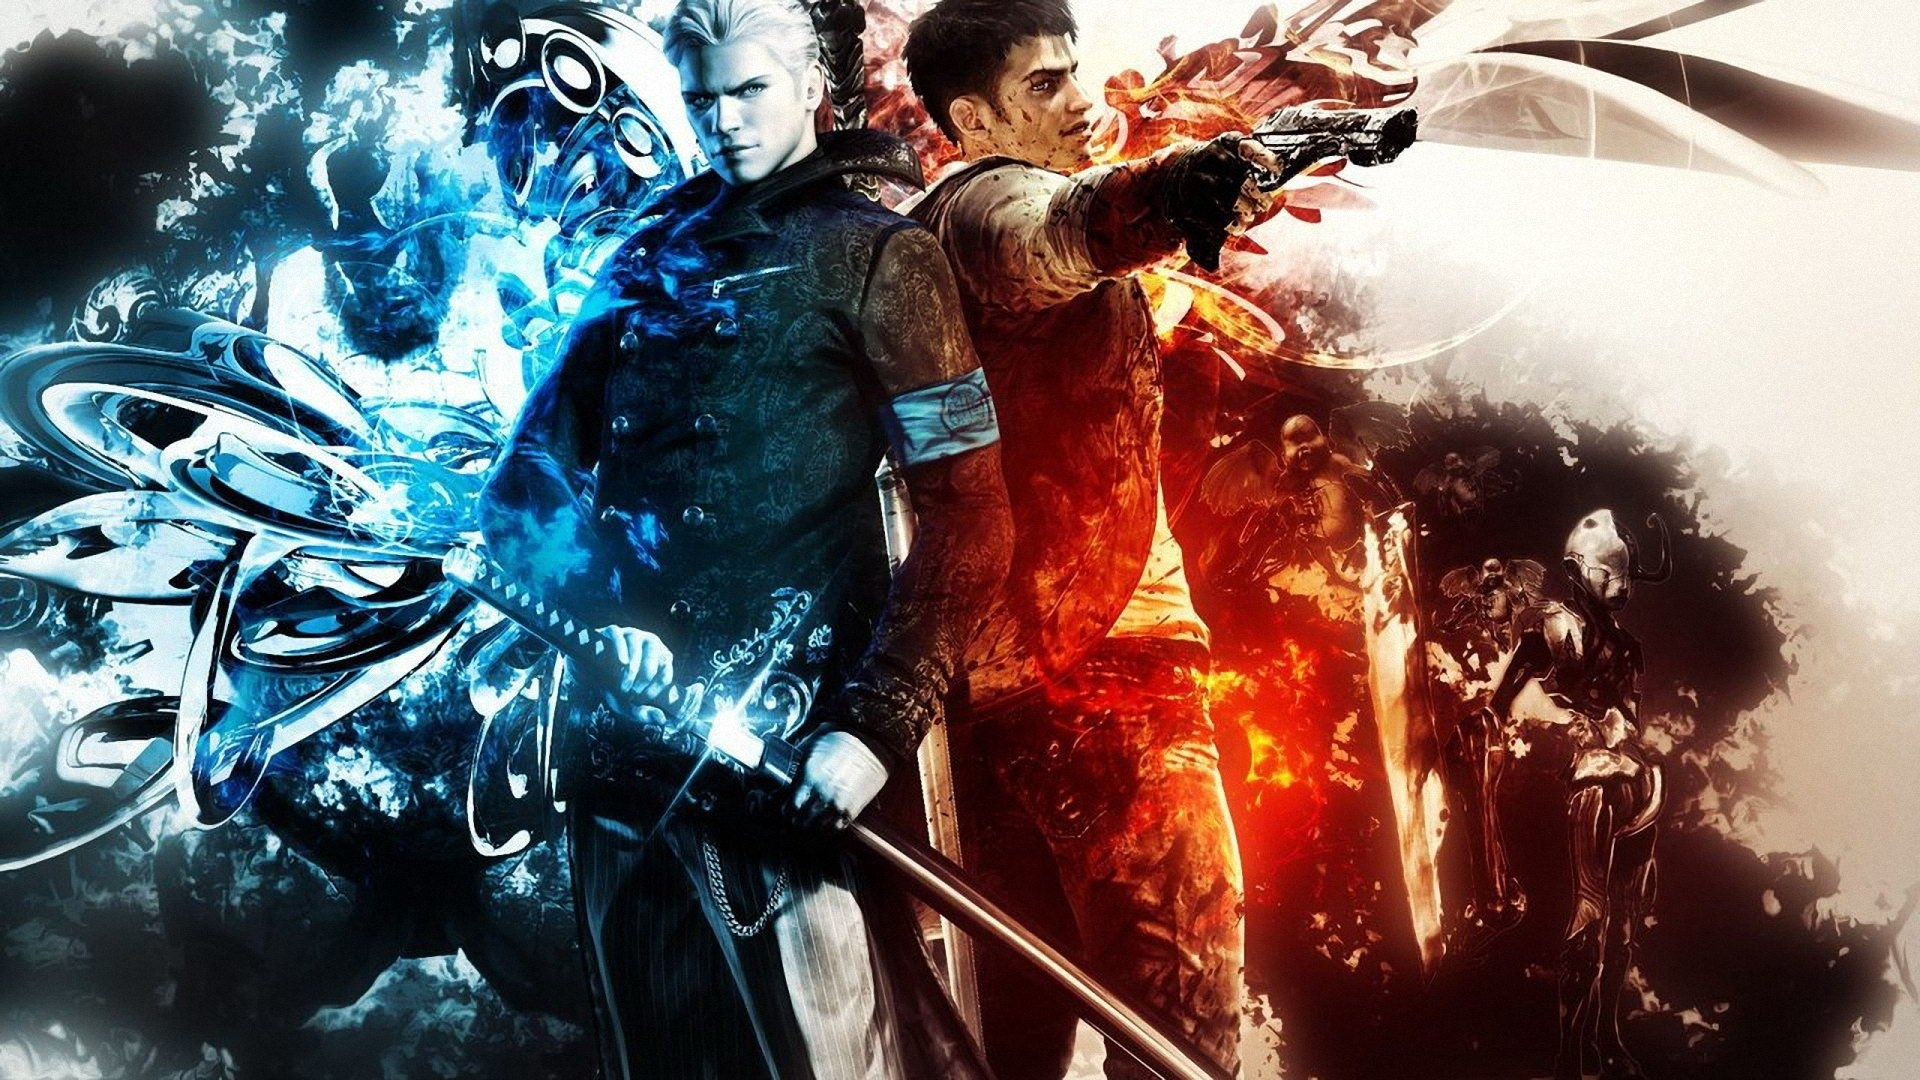 92 devil may cry hd wallpapers | background images - wallpaper abyss